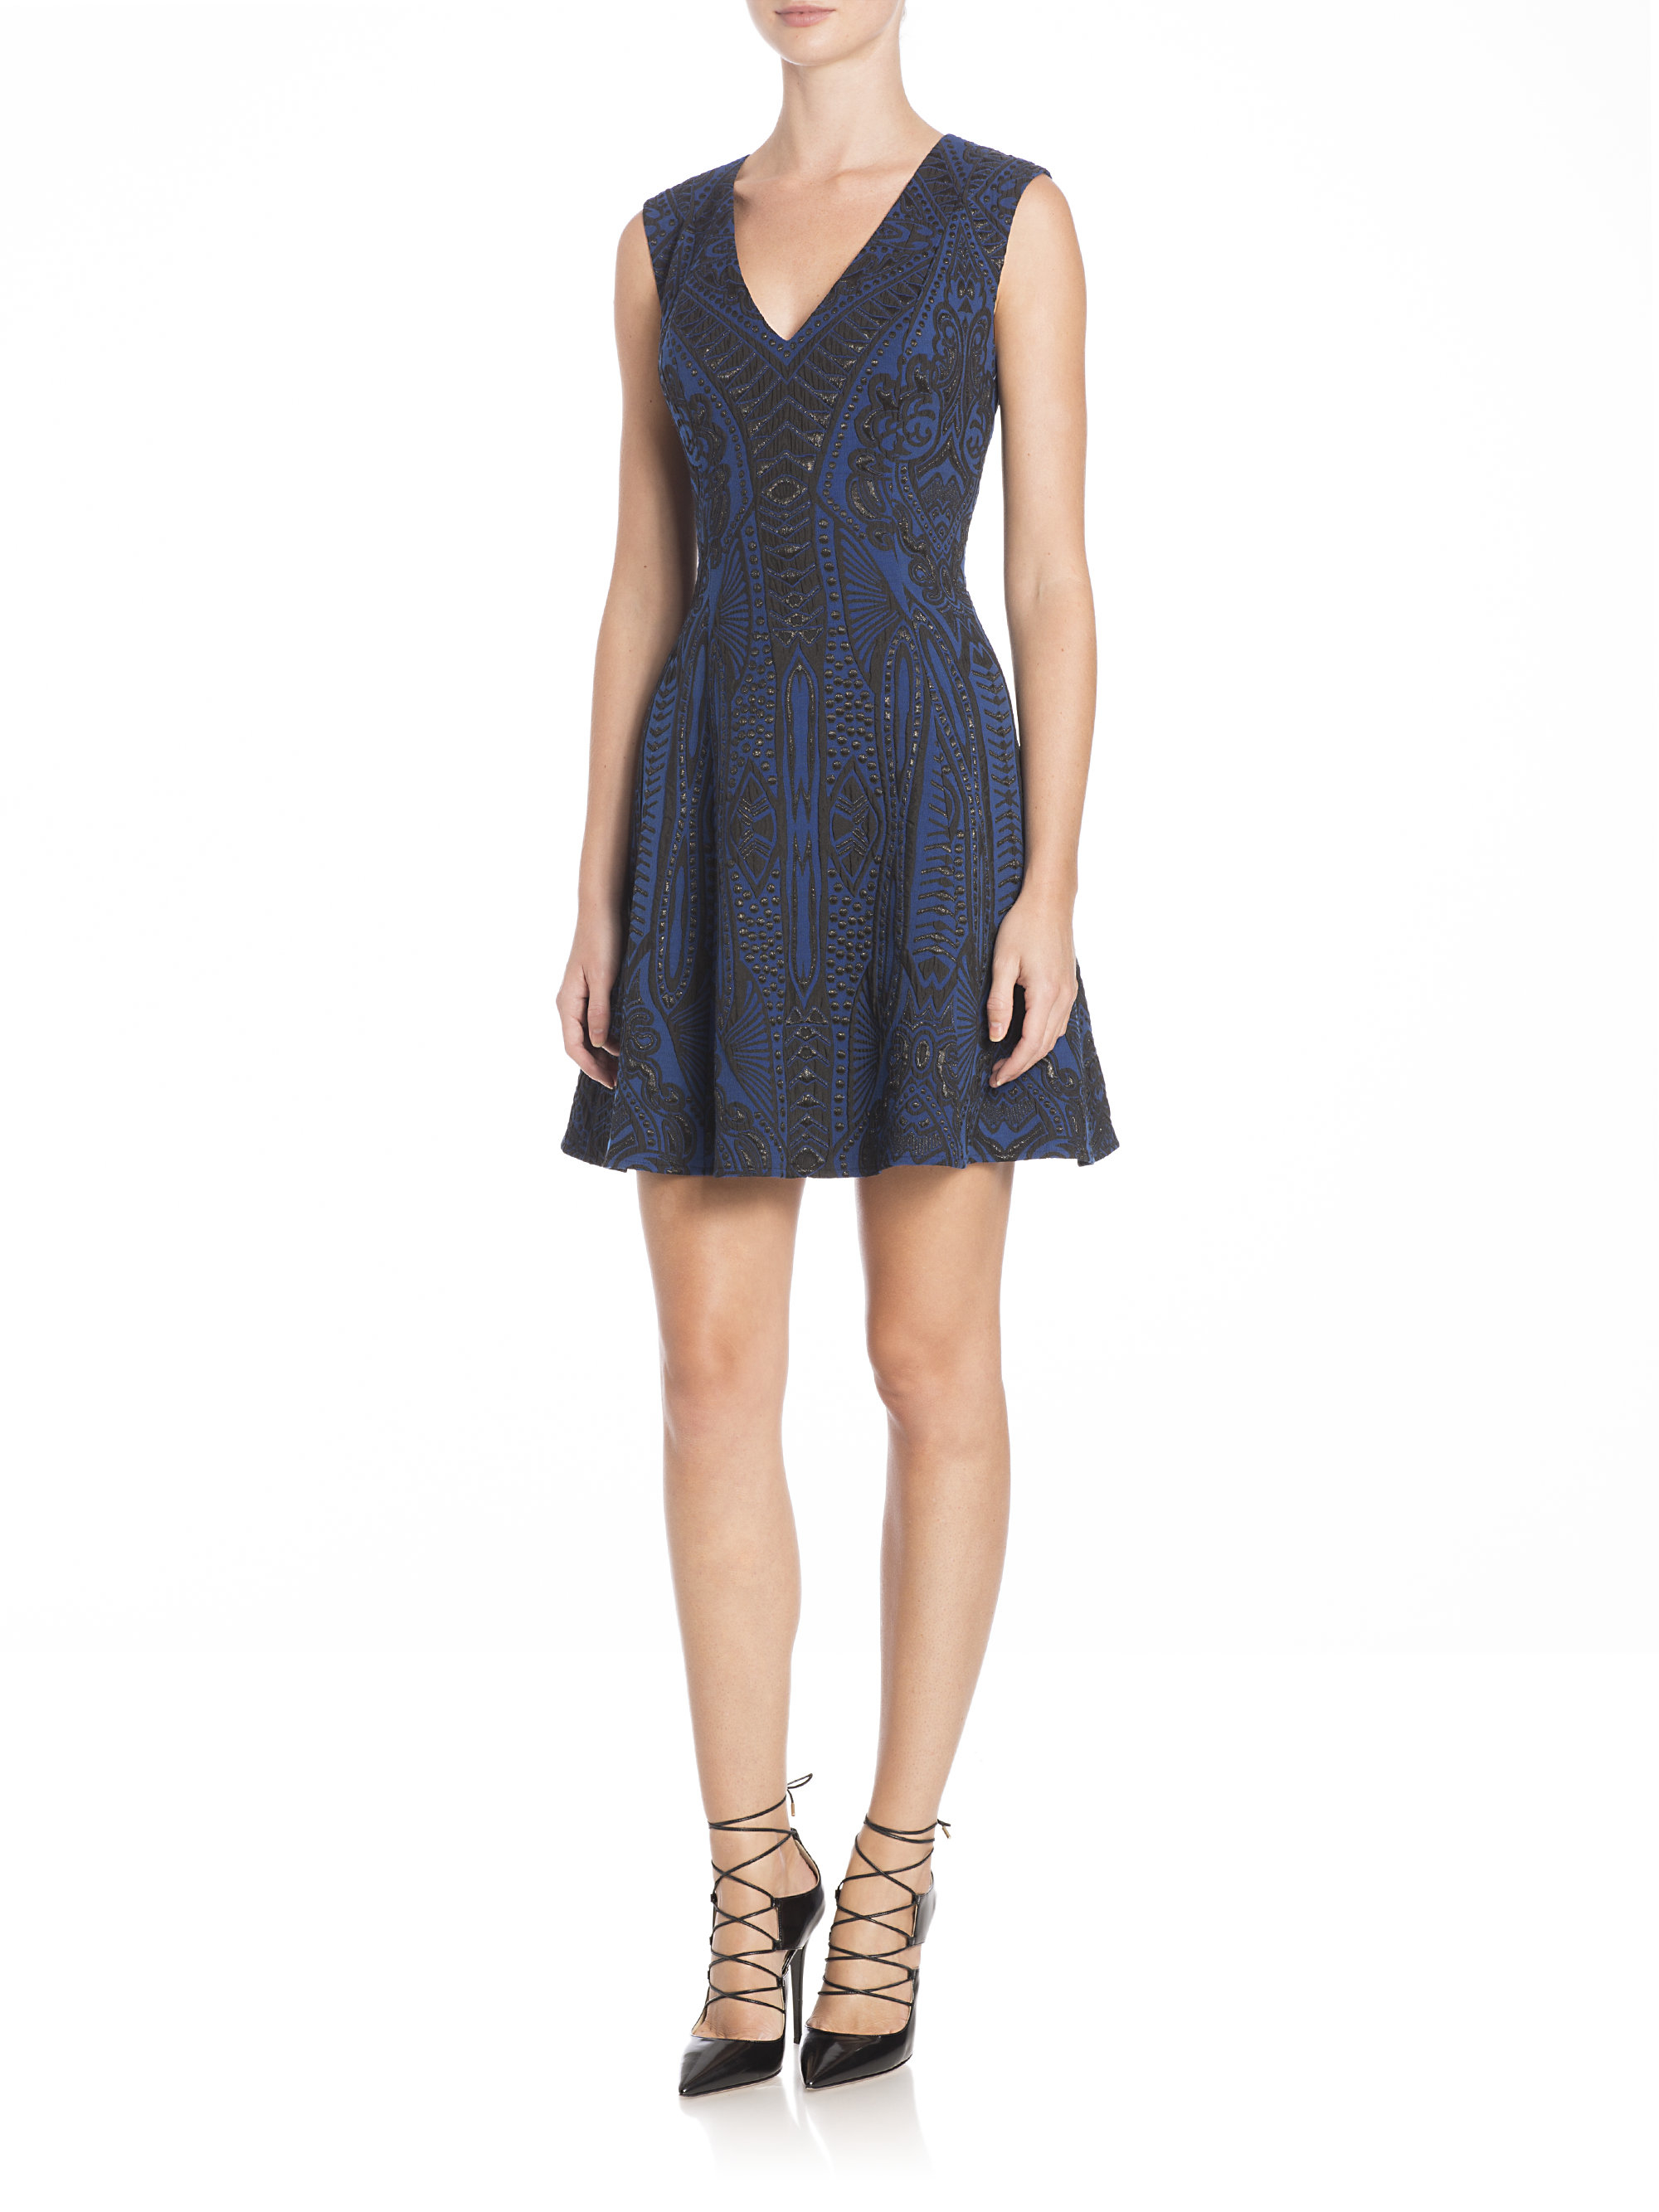 57ad114e743 BCBGMAXAZRIA Hannelli Jacquard Fit- -flare Dress in Blue - Lyst